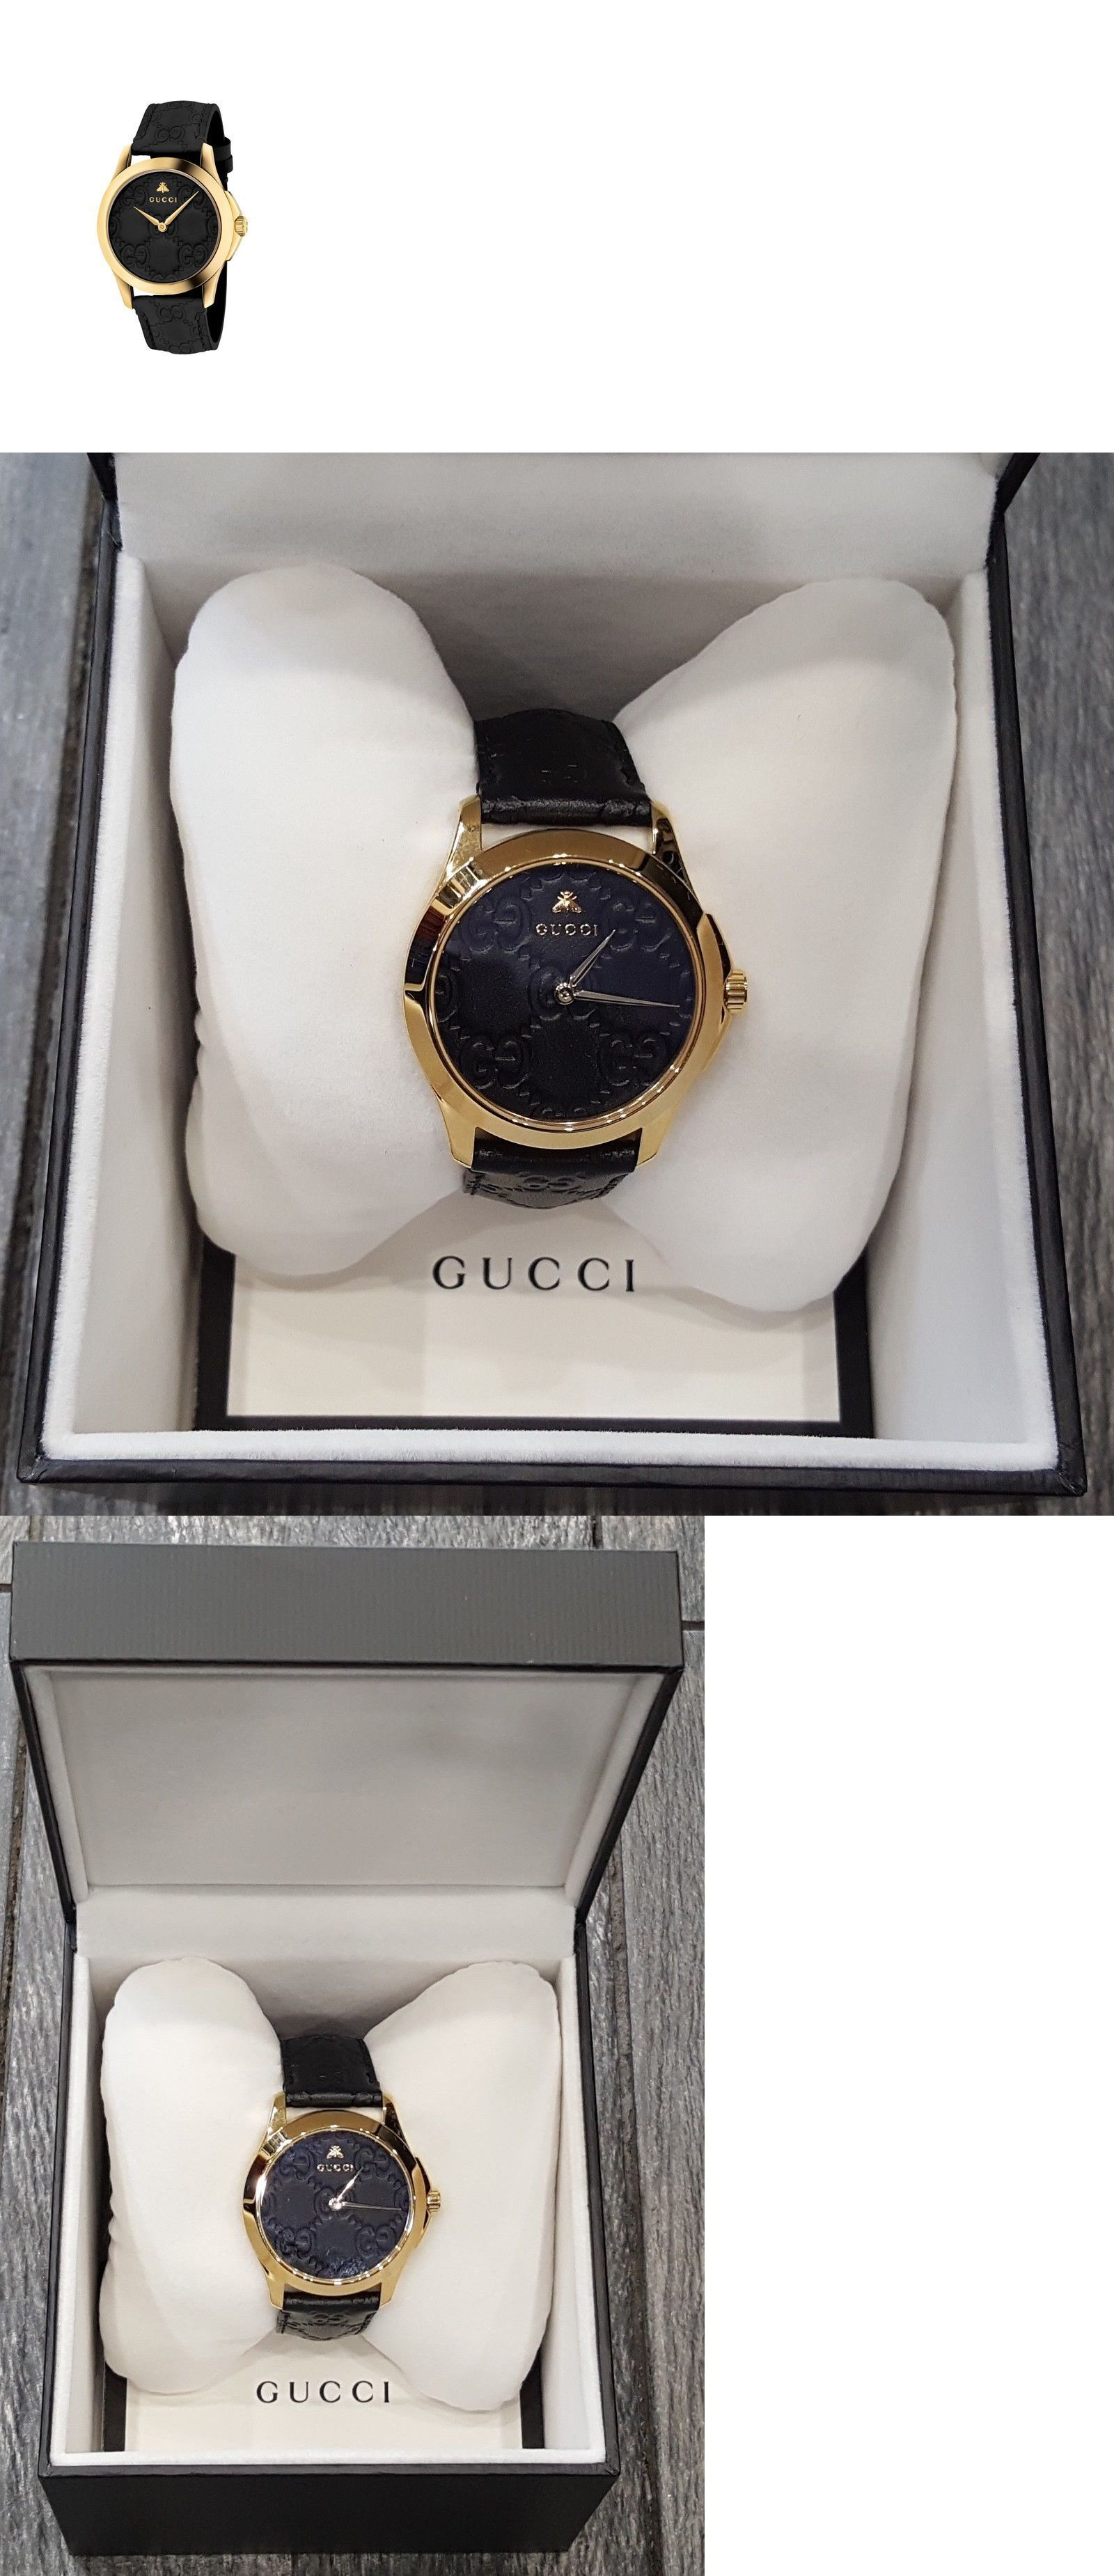 422a8f248bf Other Jewelry and Watches 98863  Gucci G-Timeless Signature Leather Strap  Dial Watch Black-Gold 38Mm Ya1264034 -  BUY IT NOW ONLY   899.99 on eBay!